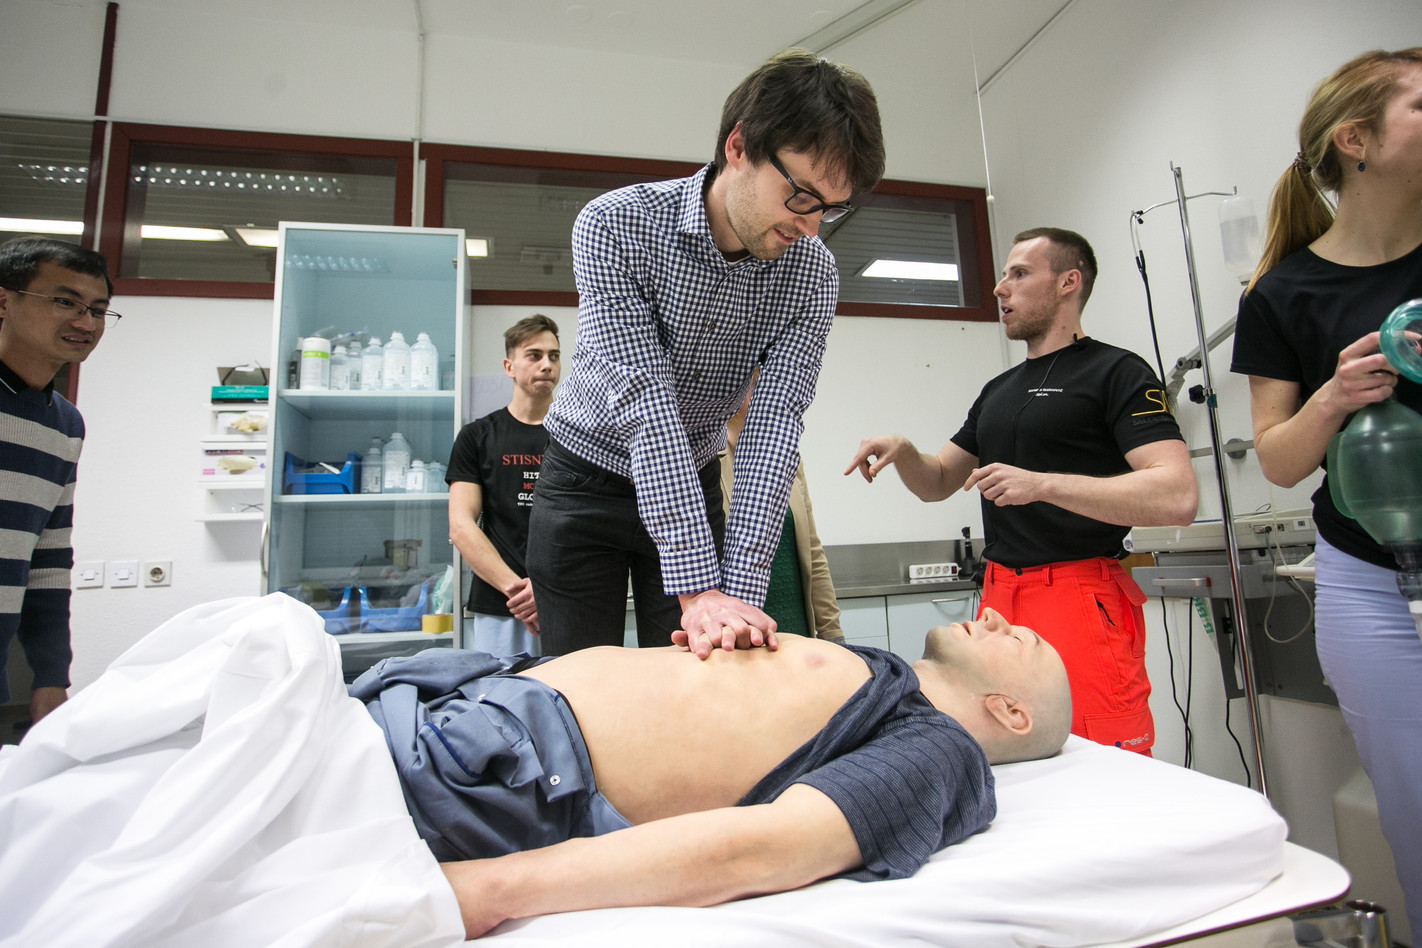 Črt saving model patient's life